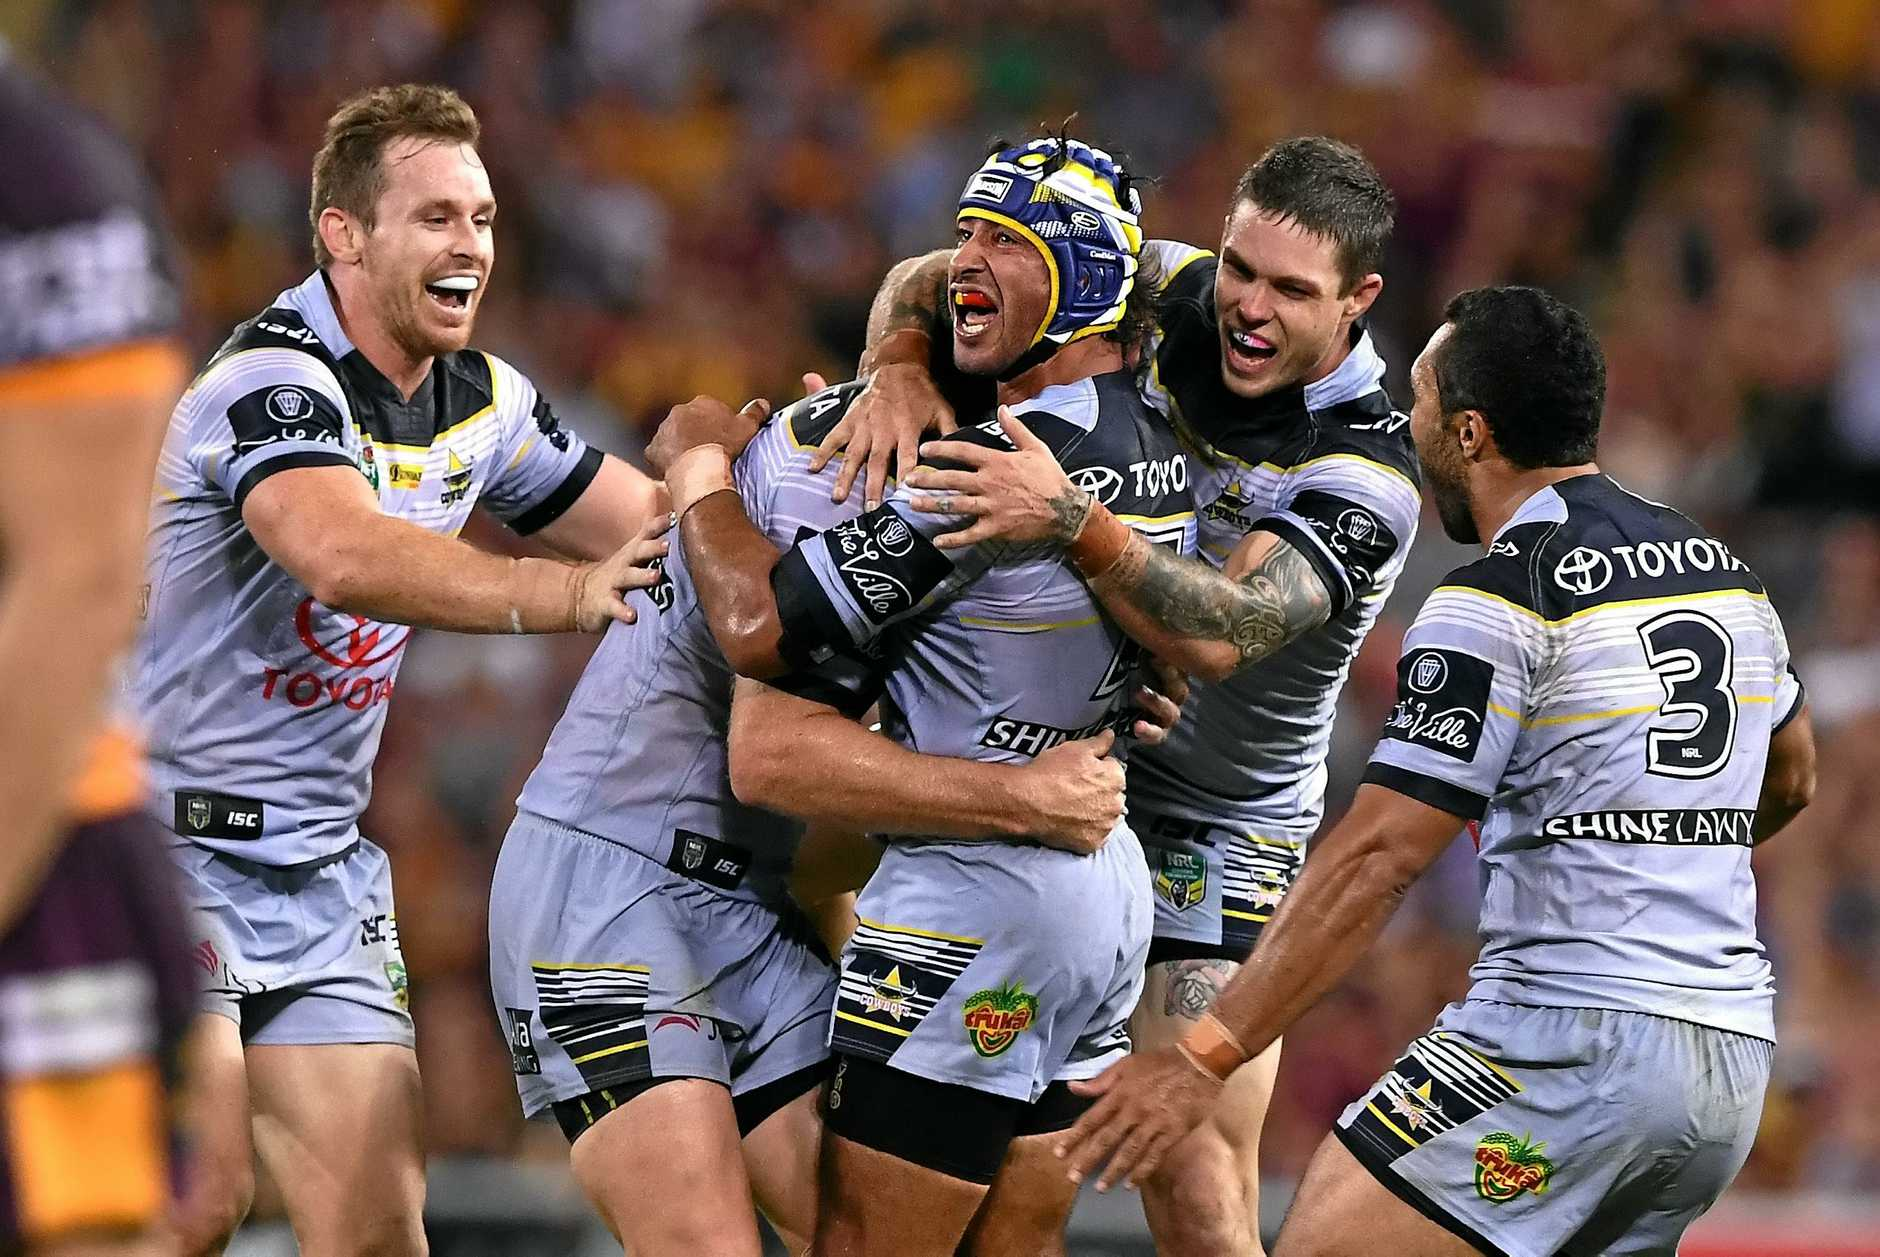 Johnathan Thurston is swamped by teammates after a match-winning play.